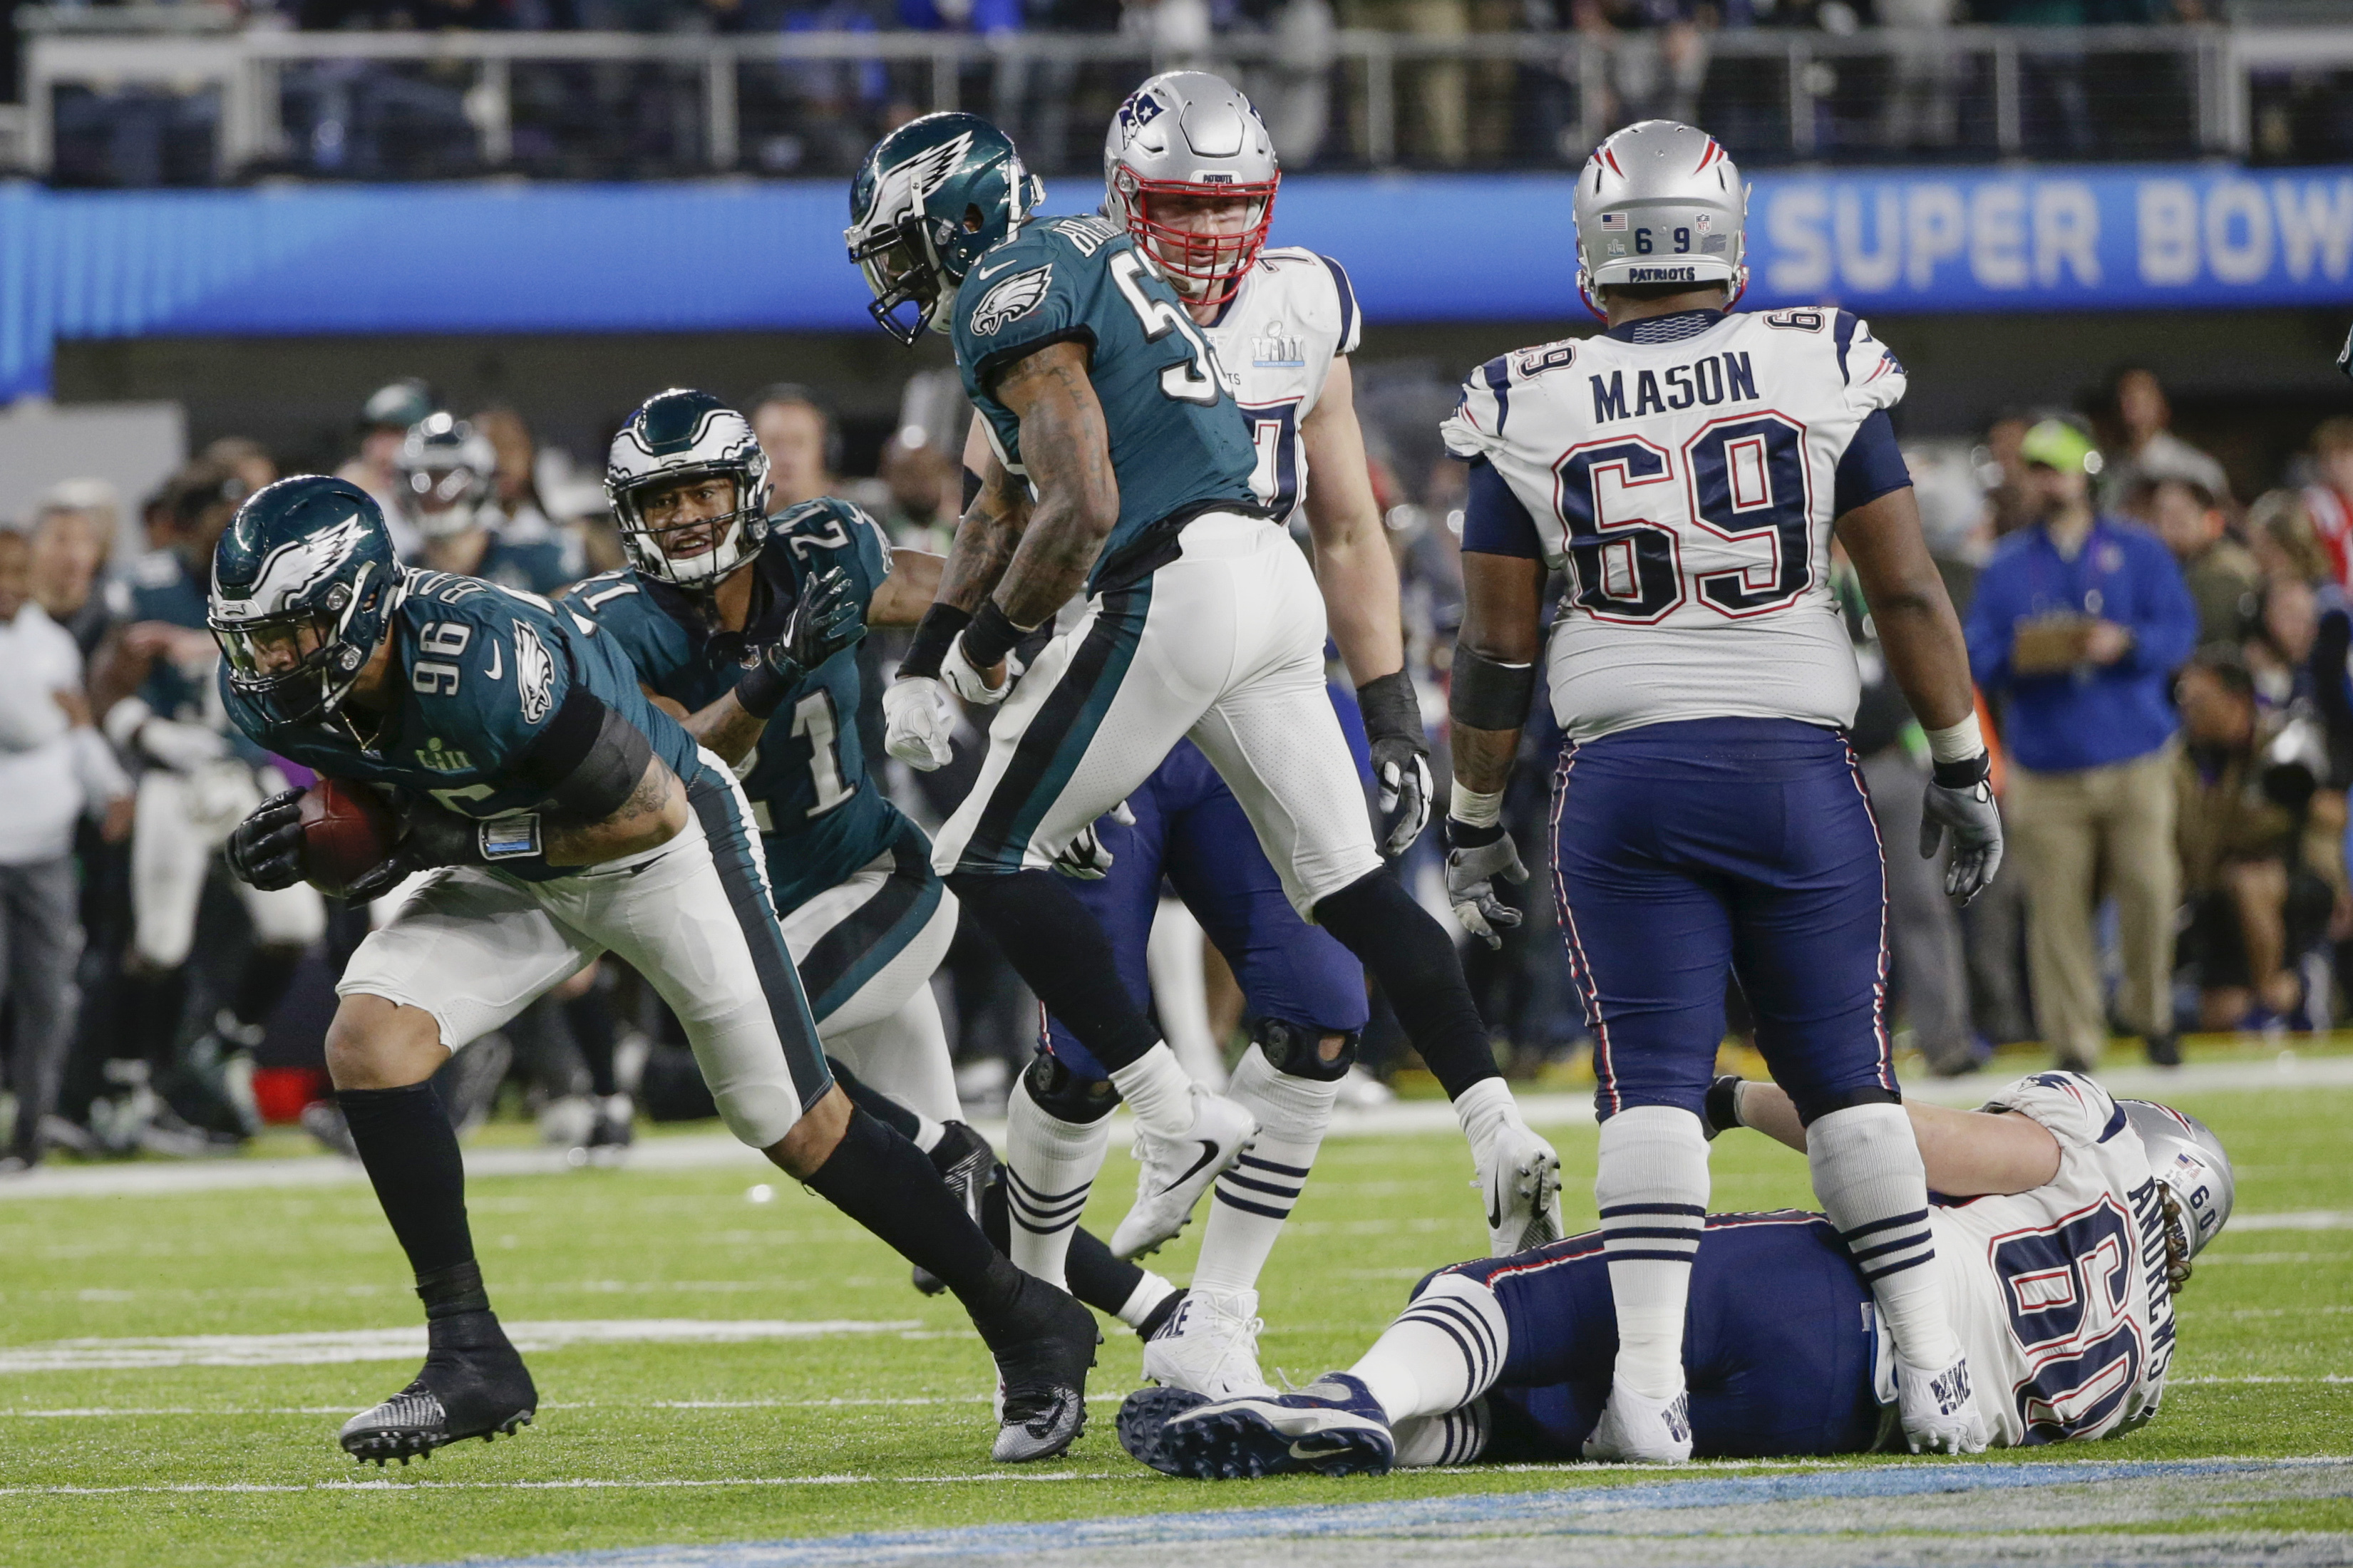 <div class='meta'><div class='origin-logo' data-origin='AP'></div><span class='caption-text' data-credit='AP Photo/Tony Gutierrez'>Philadelphia Eagles defensive end Derek Barnett (96) recovers a fumble by New England Patriots quarterback Tom Brady, during the second half.</span></div>